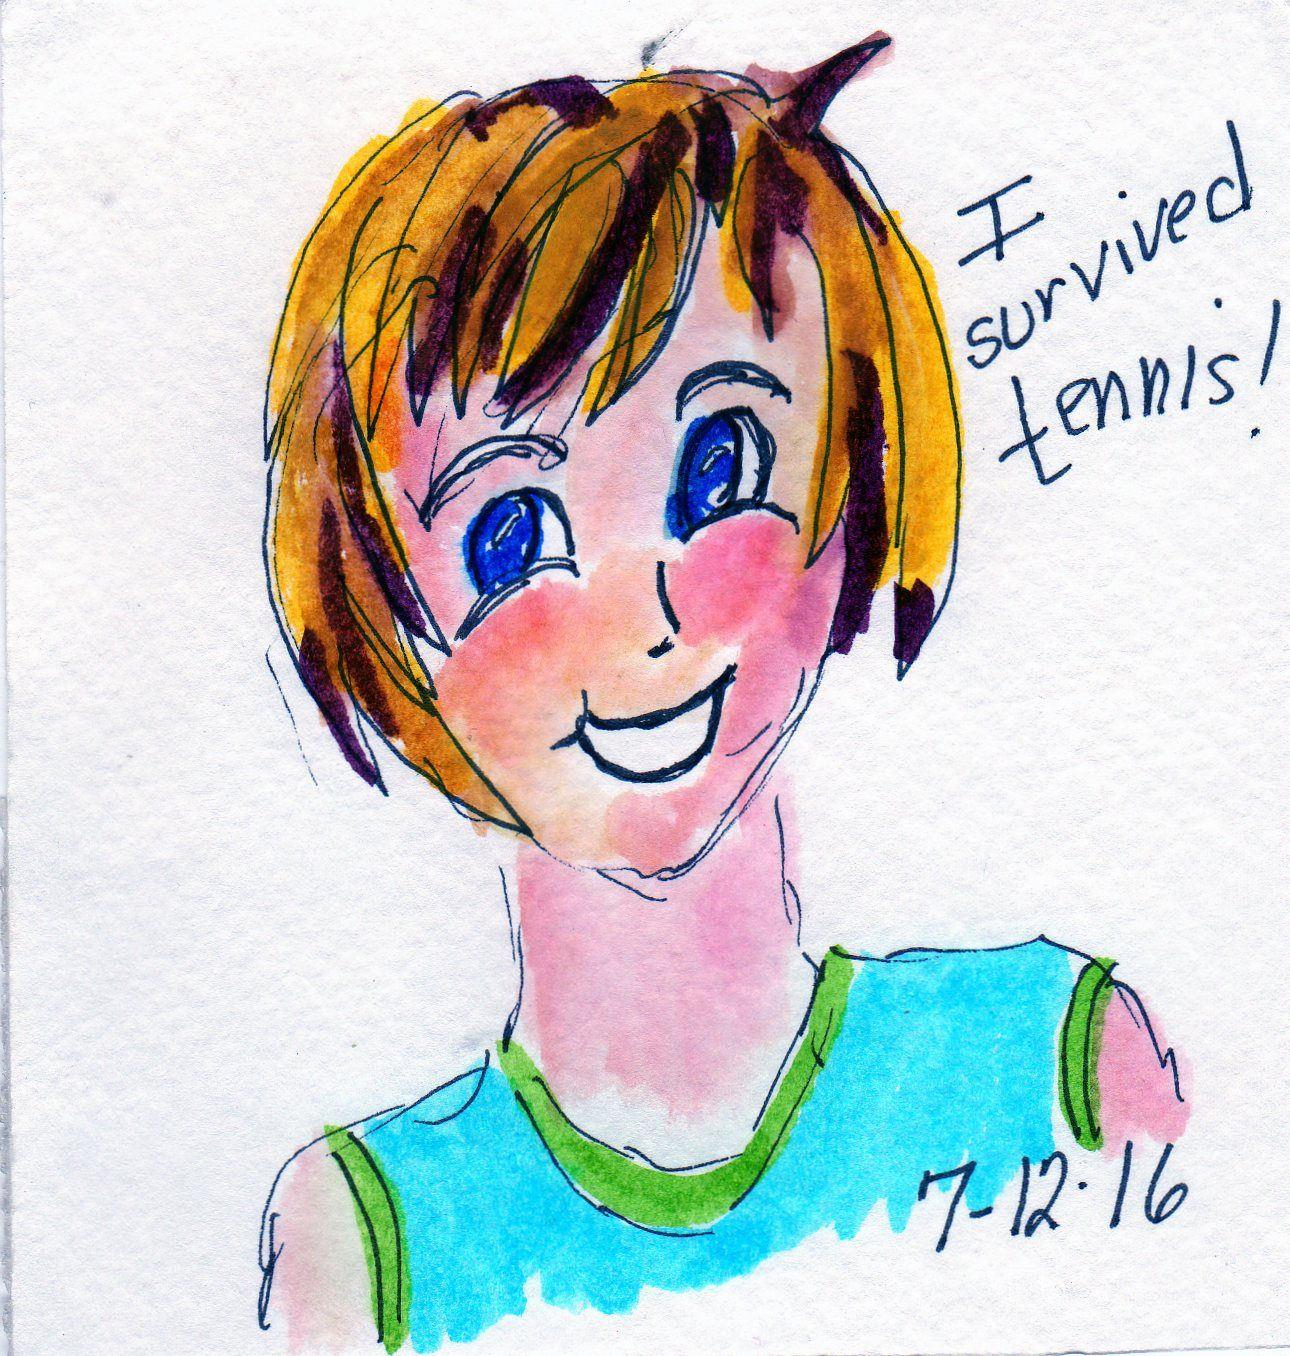 anime style self portrait by linda giese